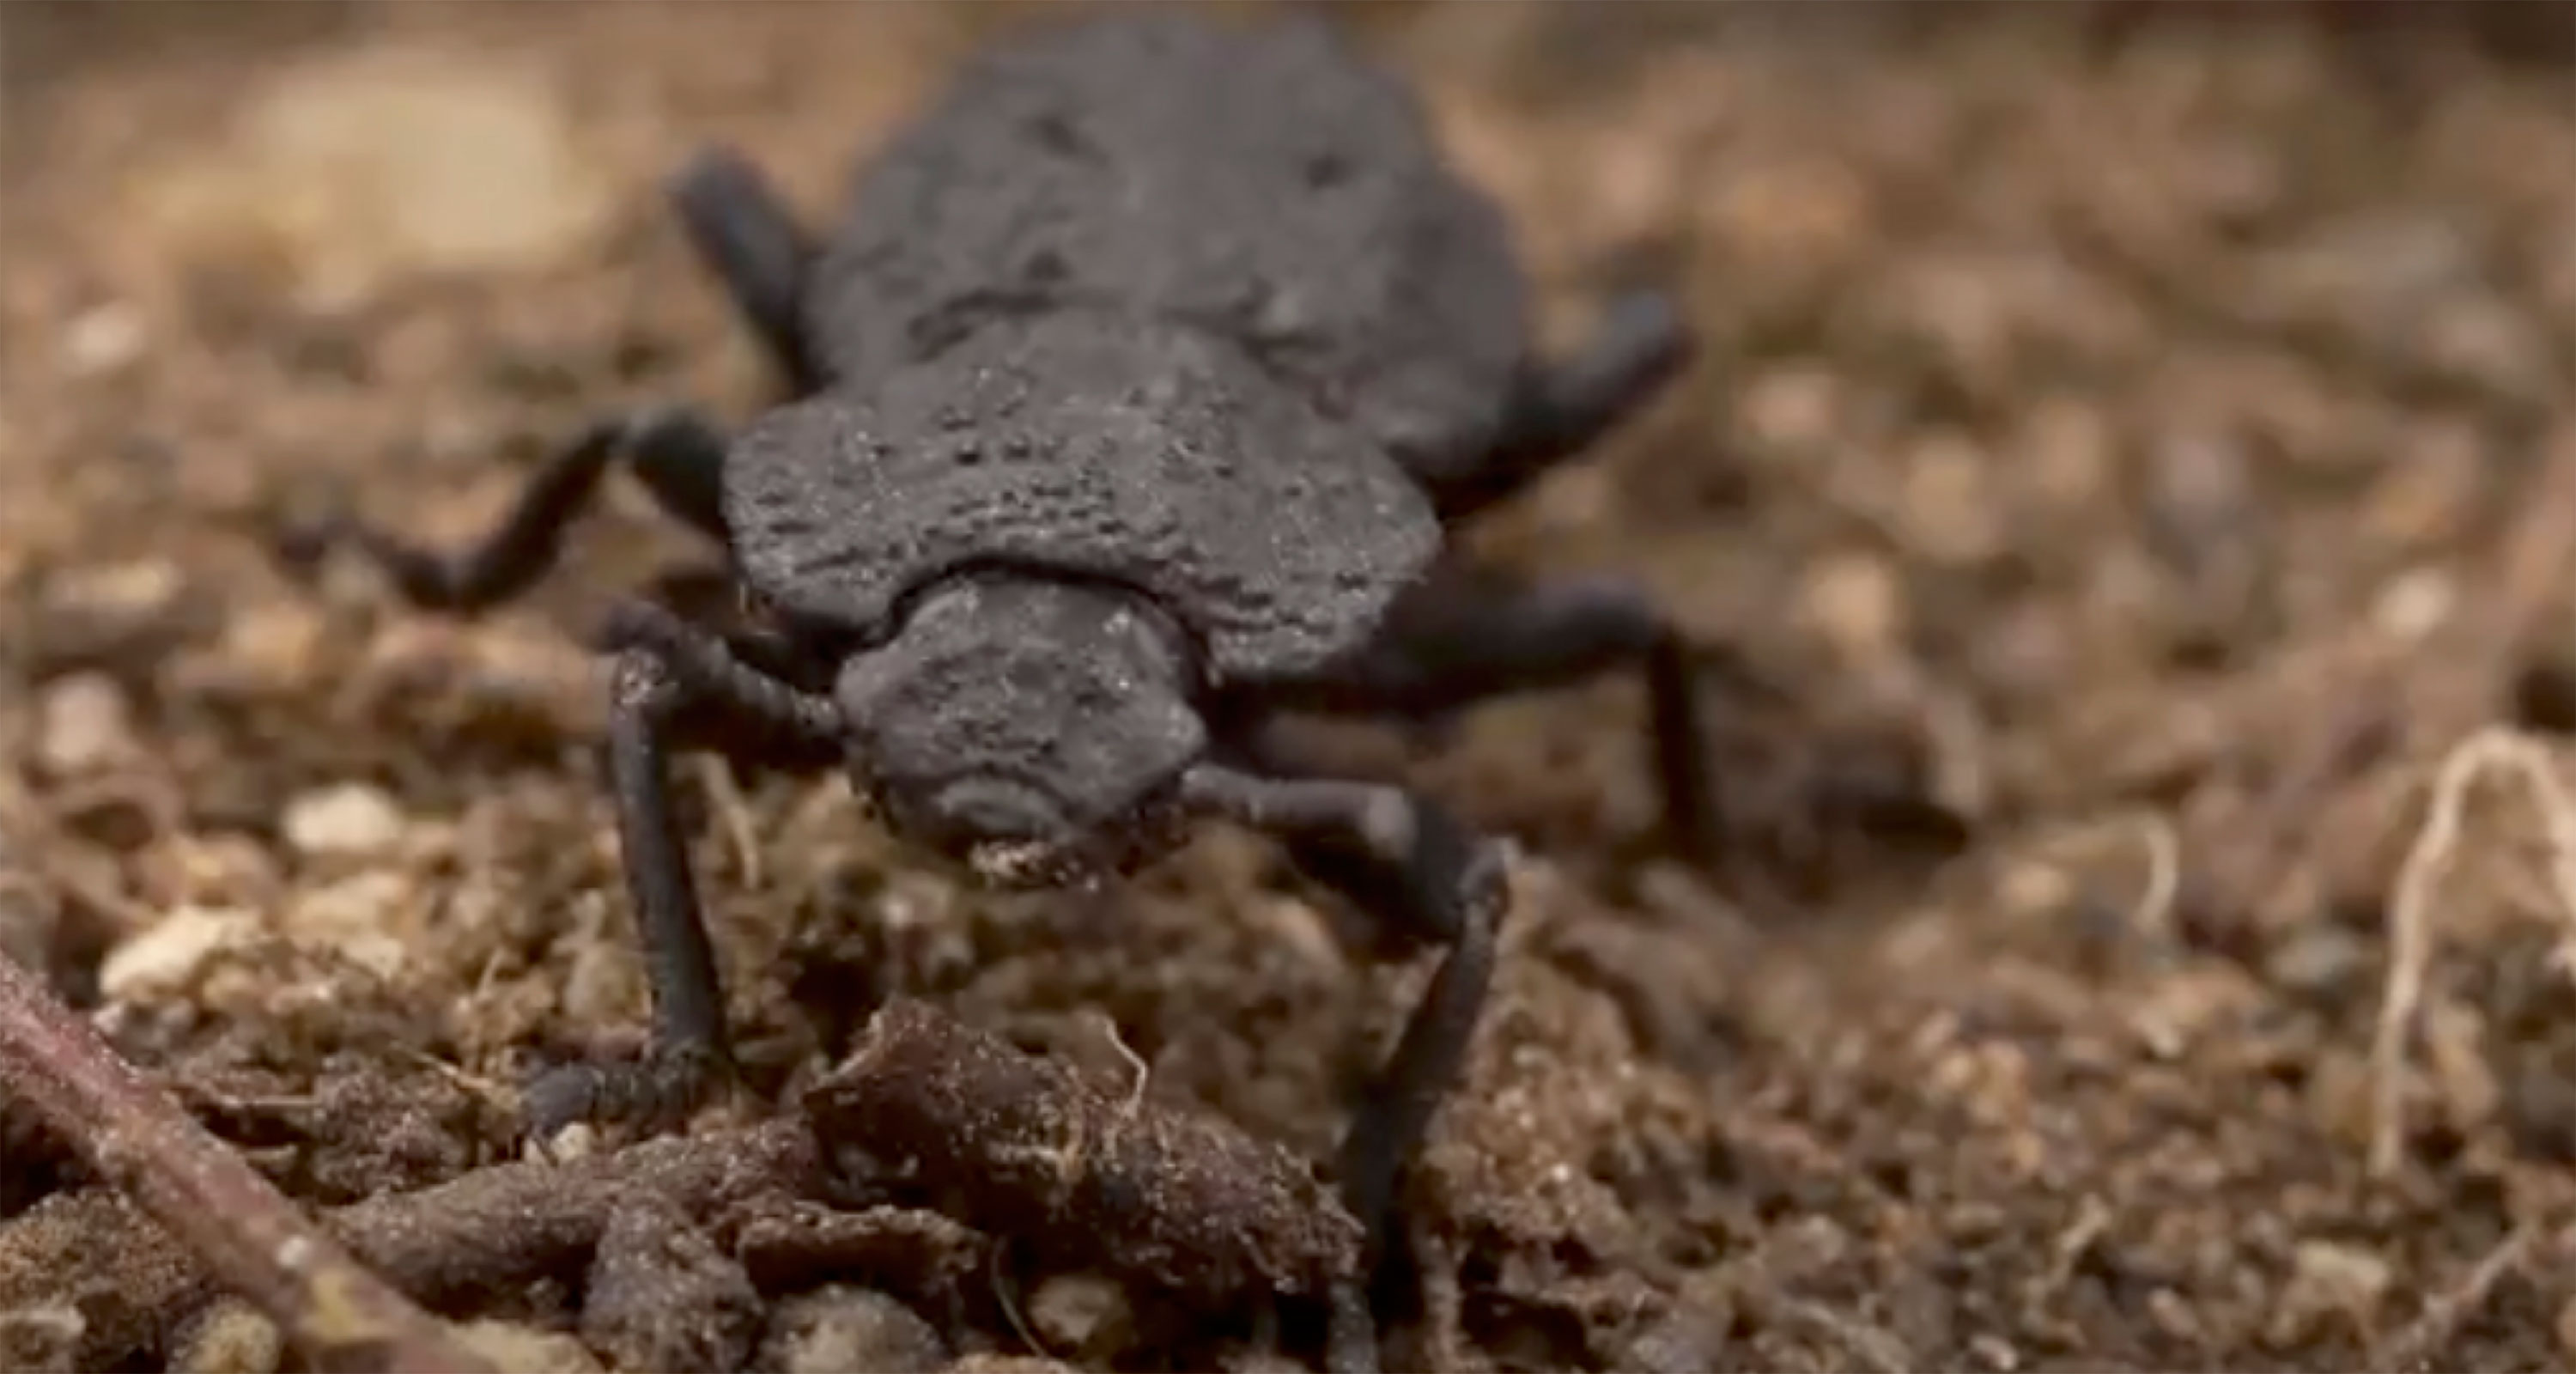 This super-beetle can survive being run over by a car — and help with engineering problems